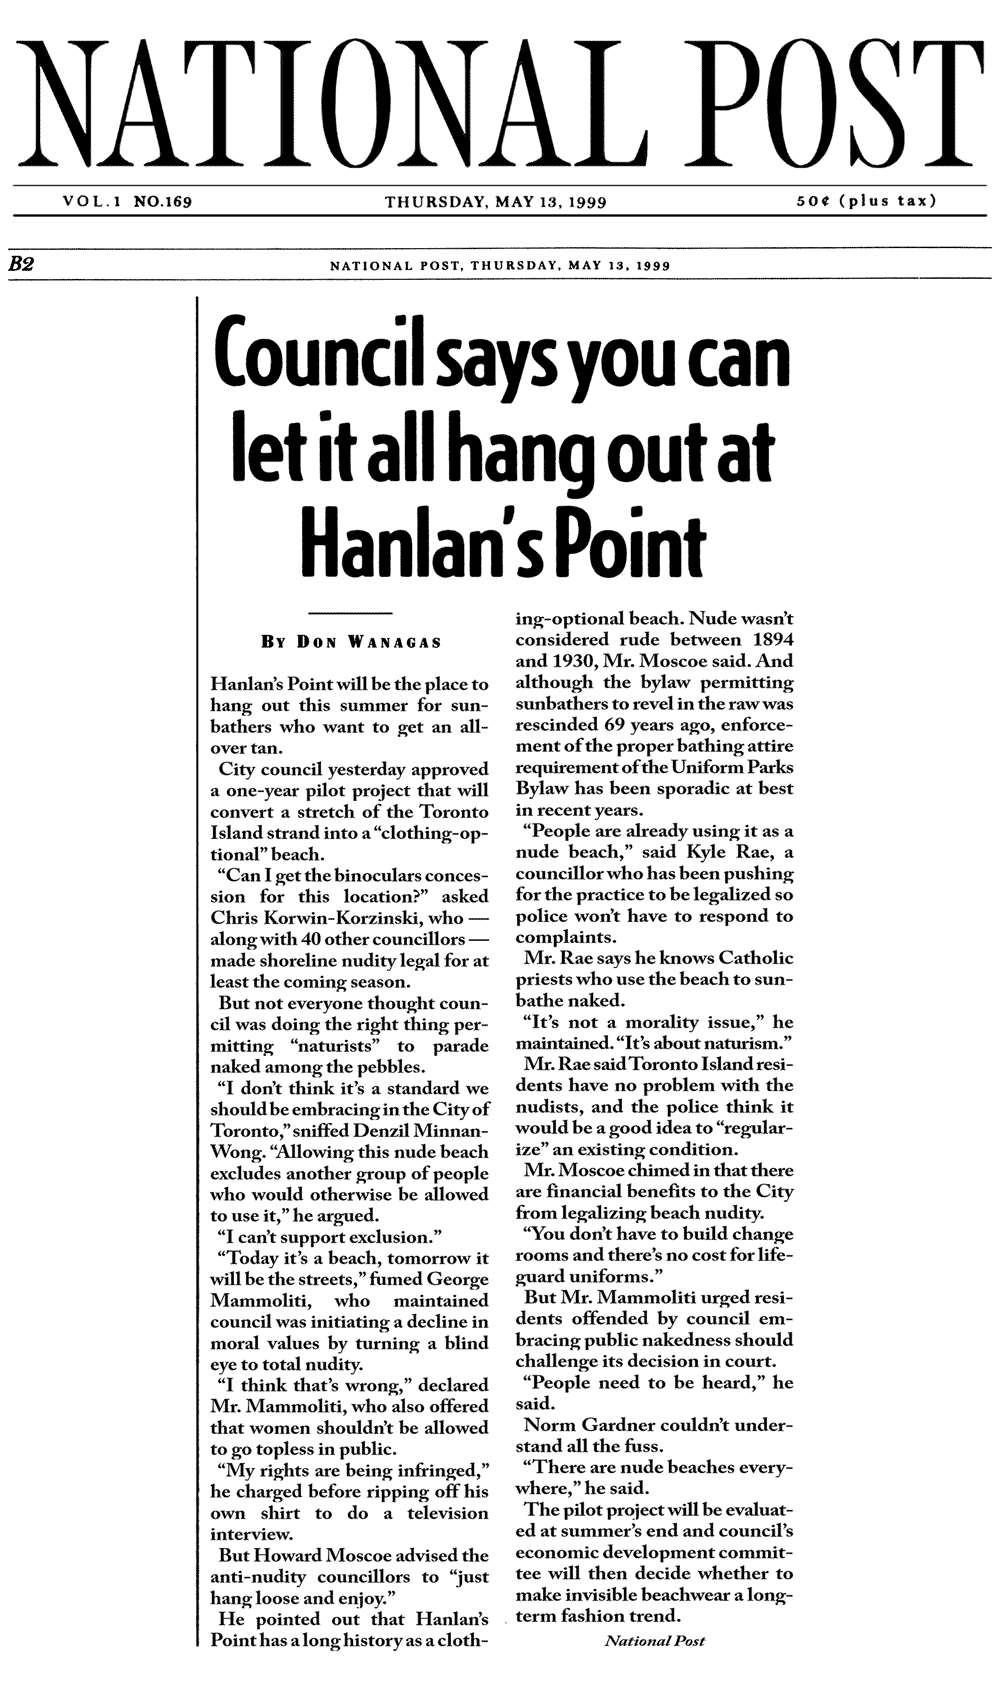 National Post 1999-05-13 pB2 - Simm convinces Toronto Council to create official Clothing-Optional Zone at Hanlan's Point